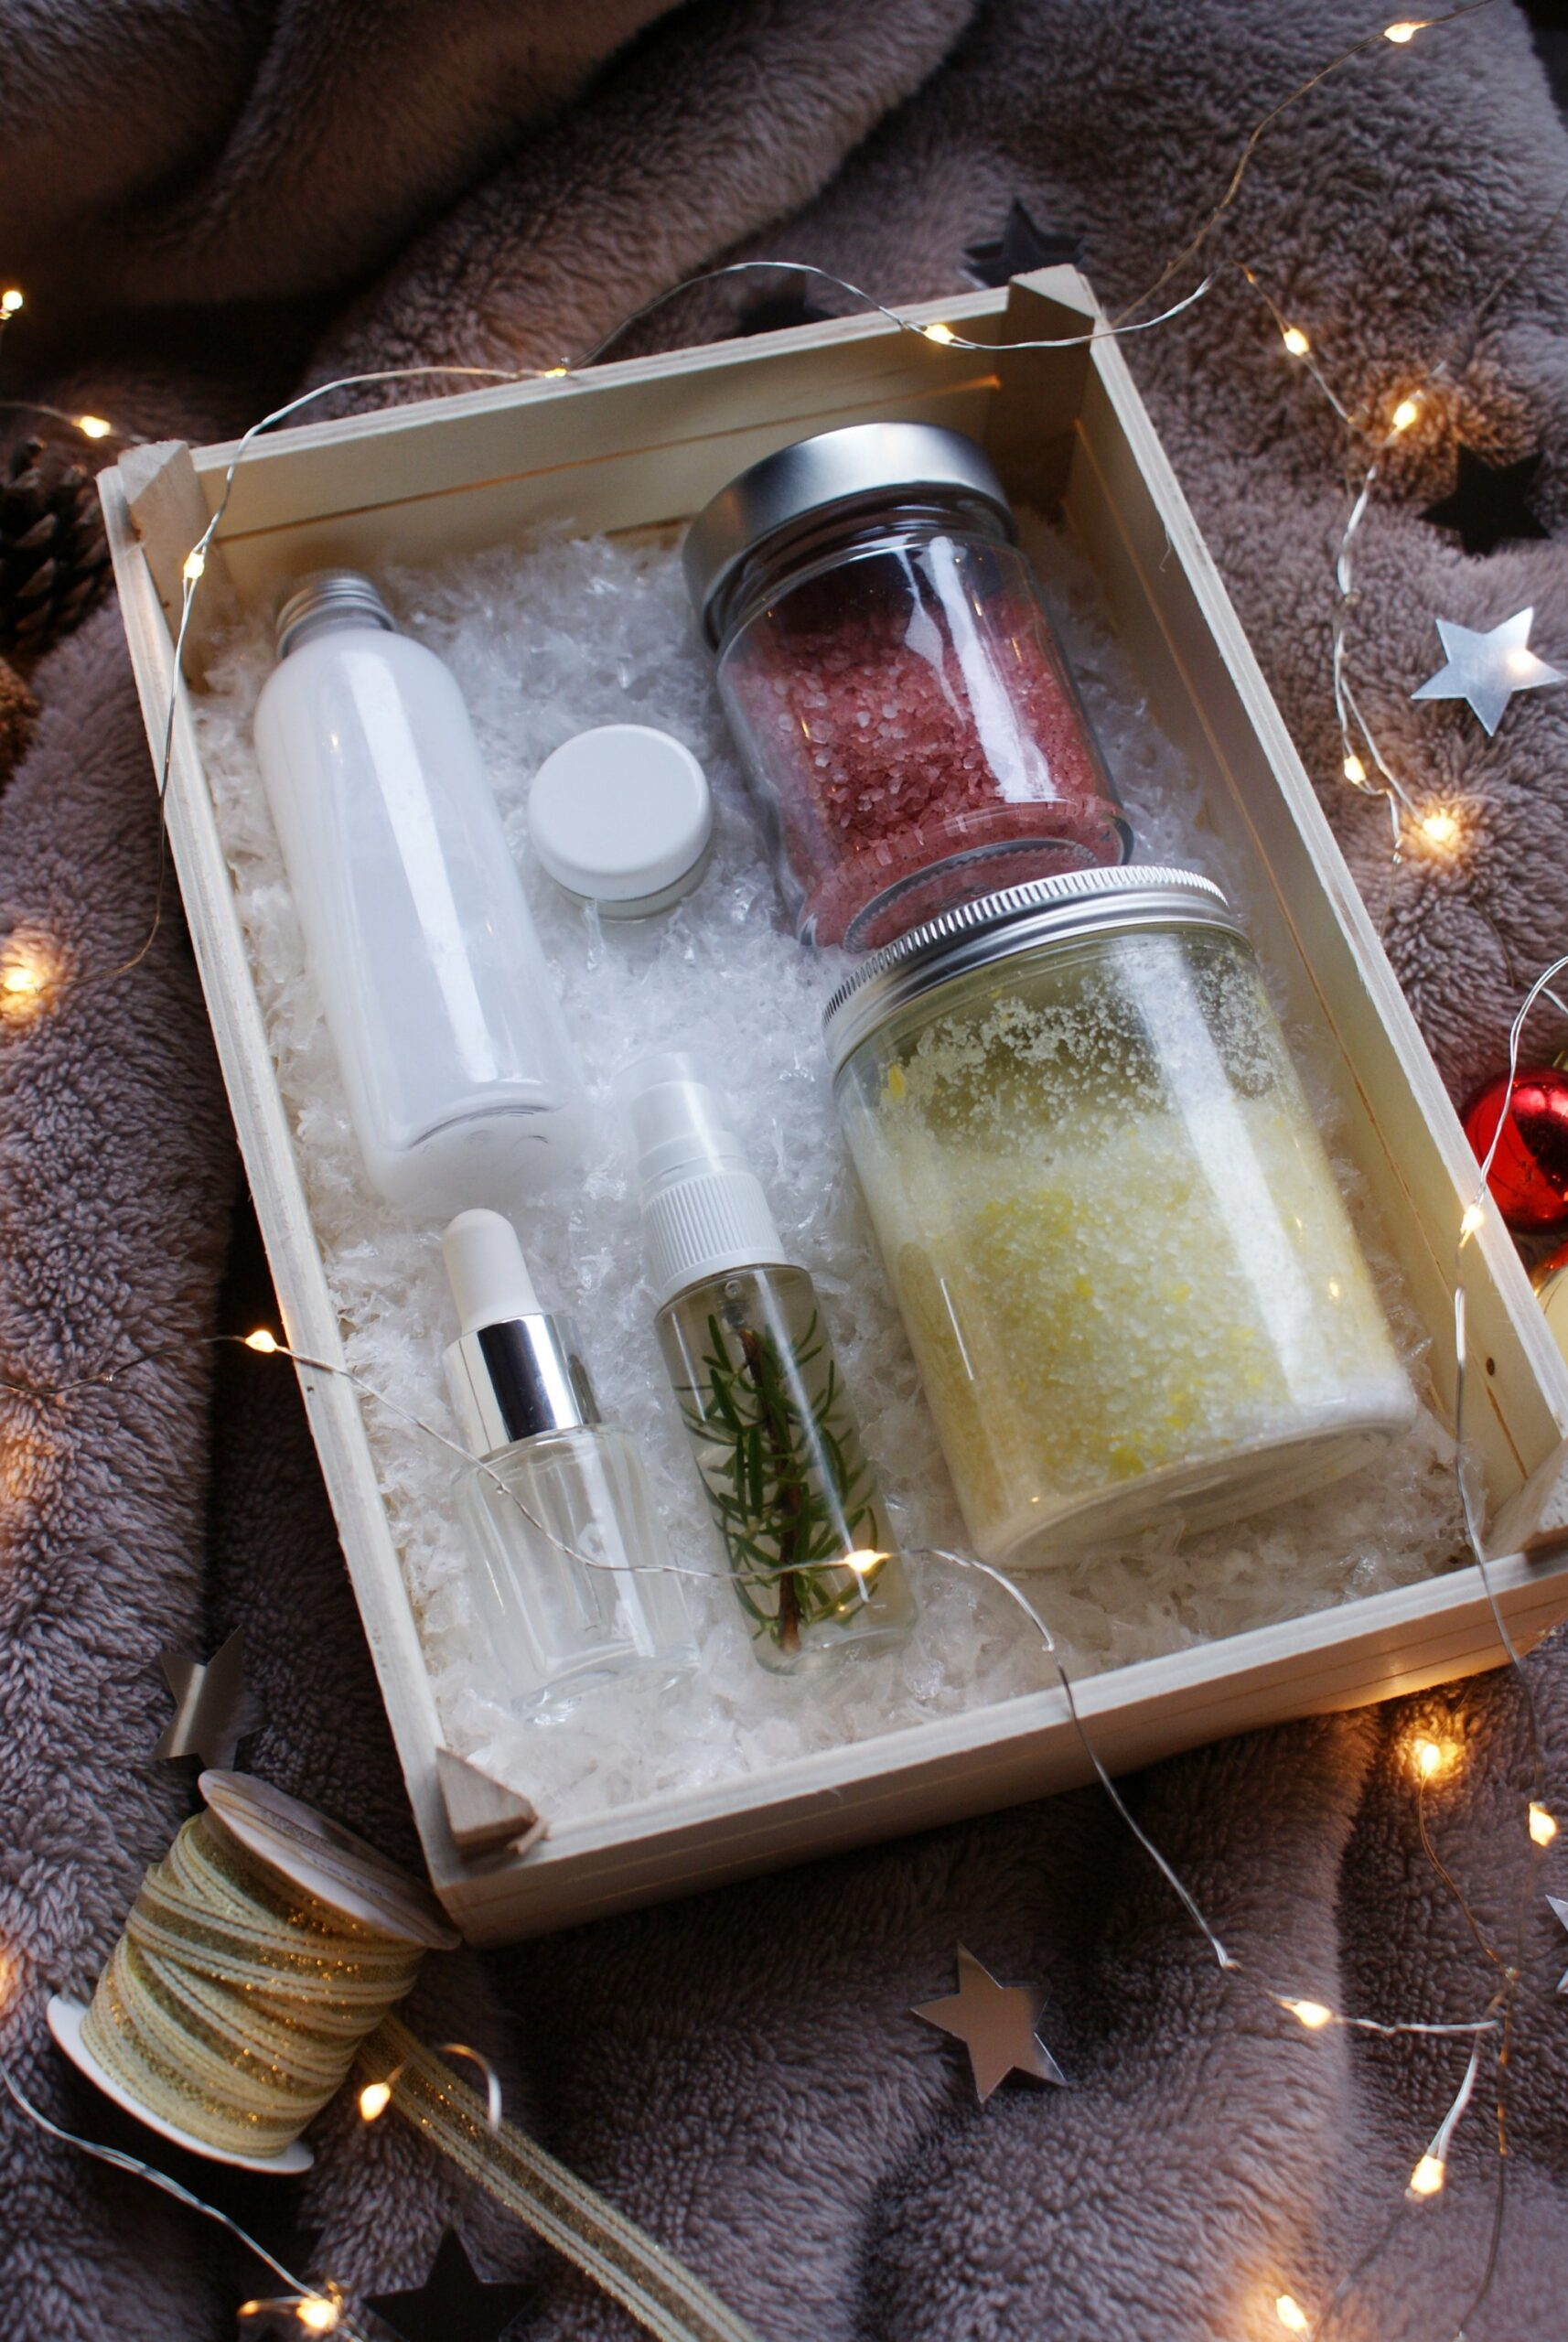 diy beauty spa kit gift francinesplaceblog